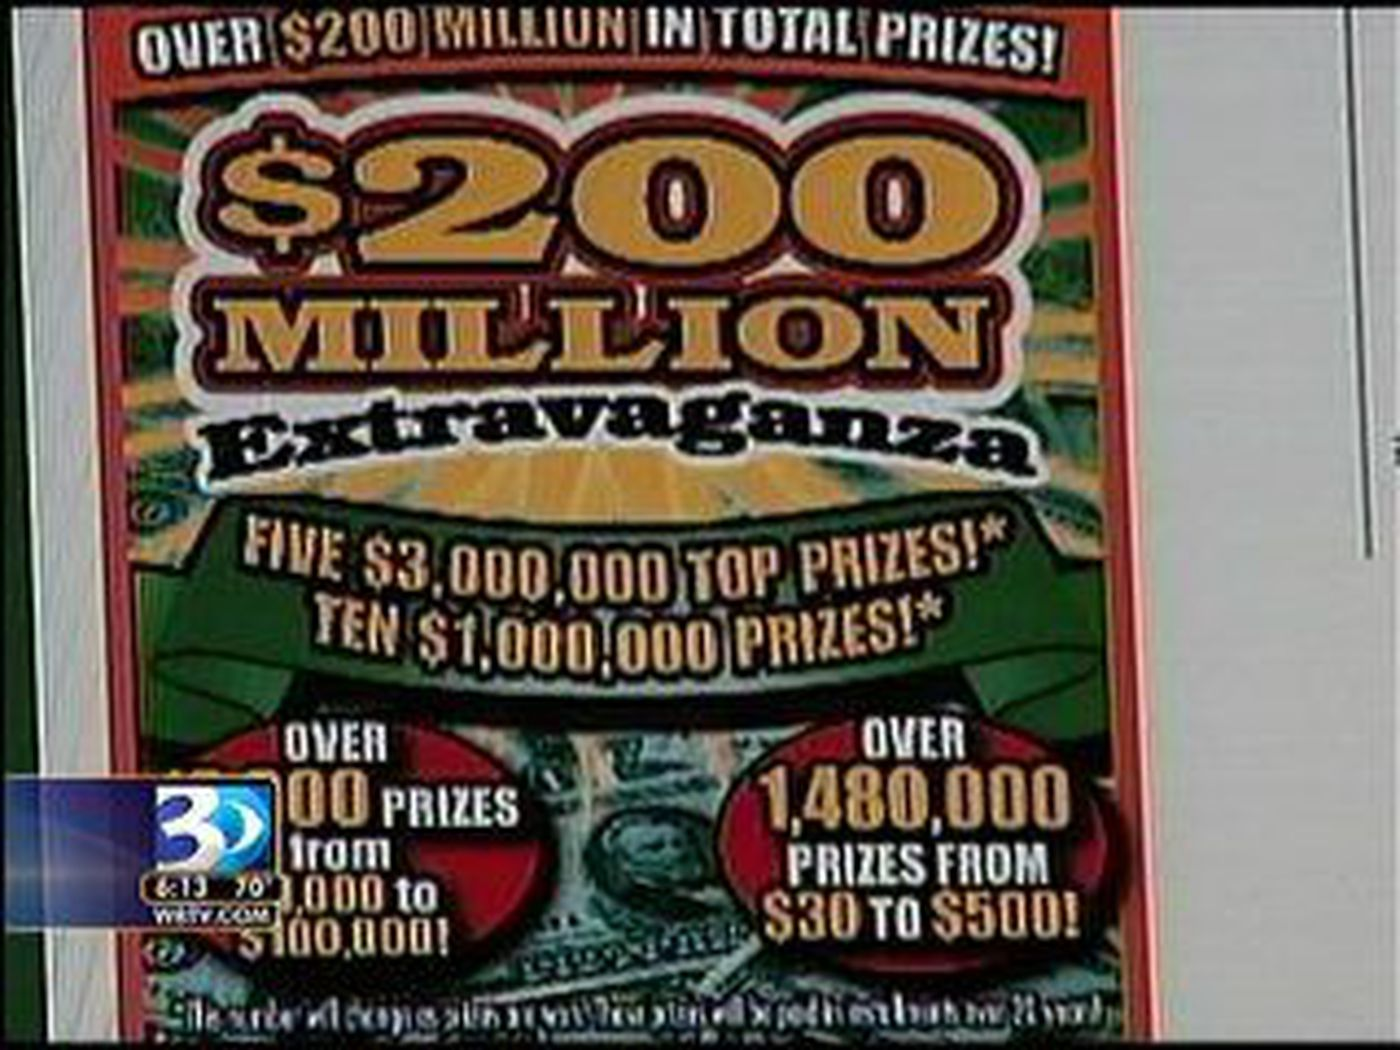 New NC lottery game offers better odds